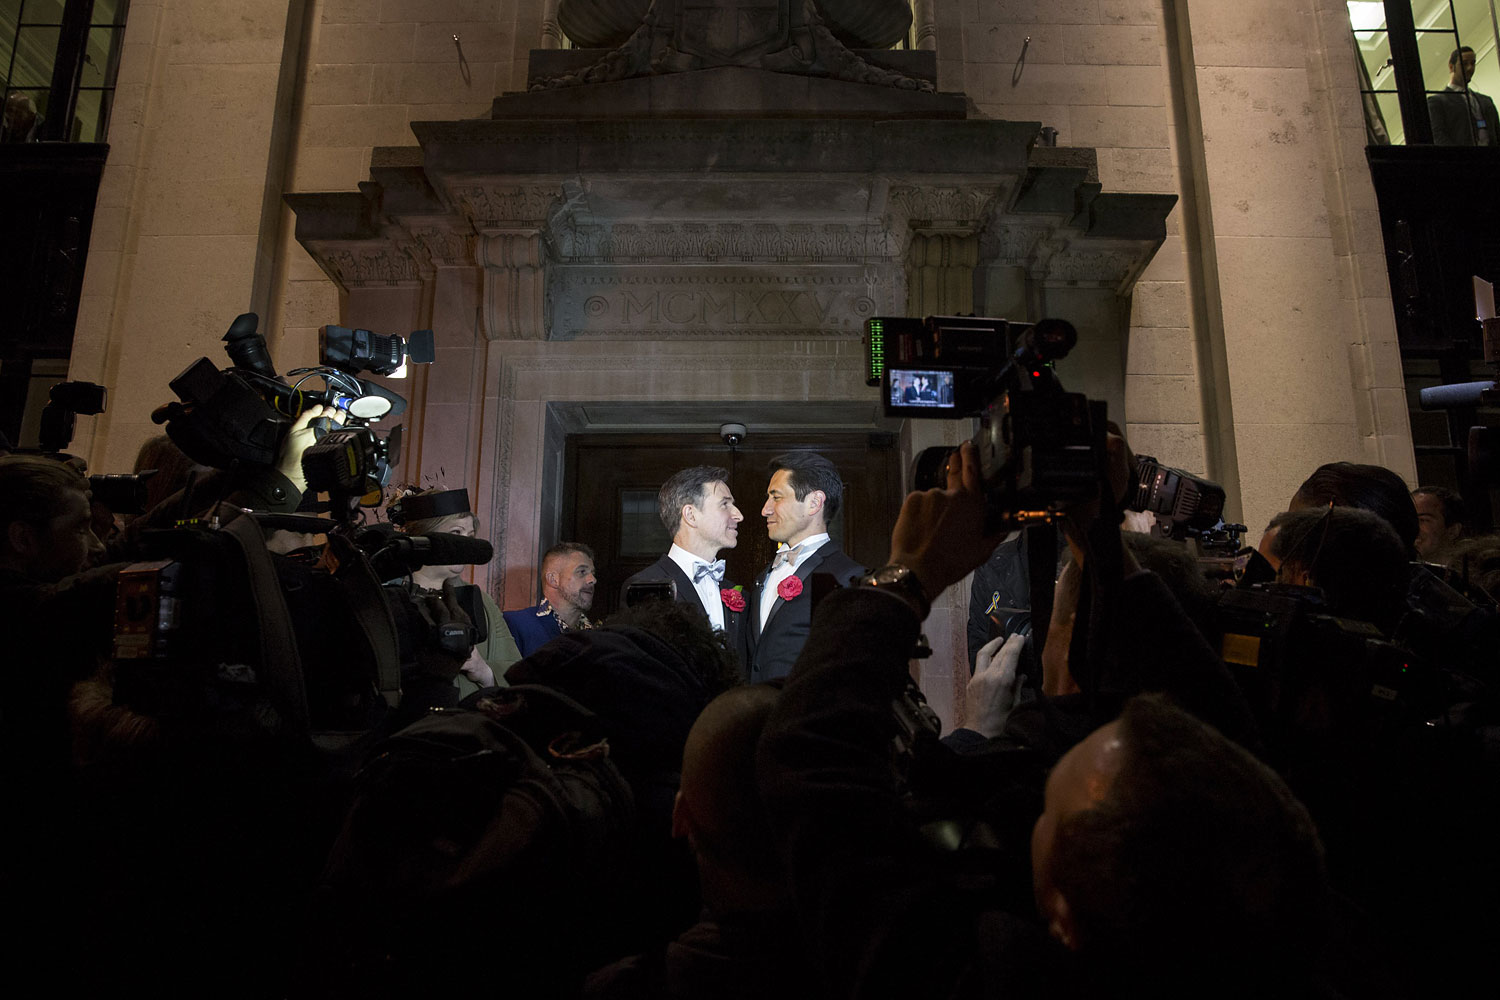 Gay couple Peter McGraith and David Cabreza stand on the steps of Islington Town Hall after being married shortly after midnight in one of the UK's first same-sex weddings on March 29, 2014 in London.